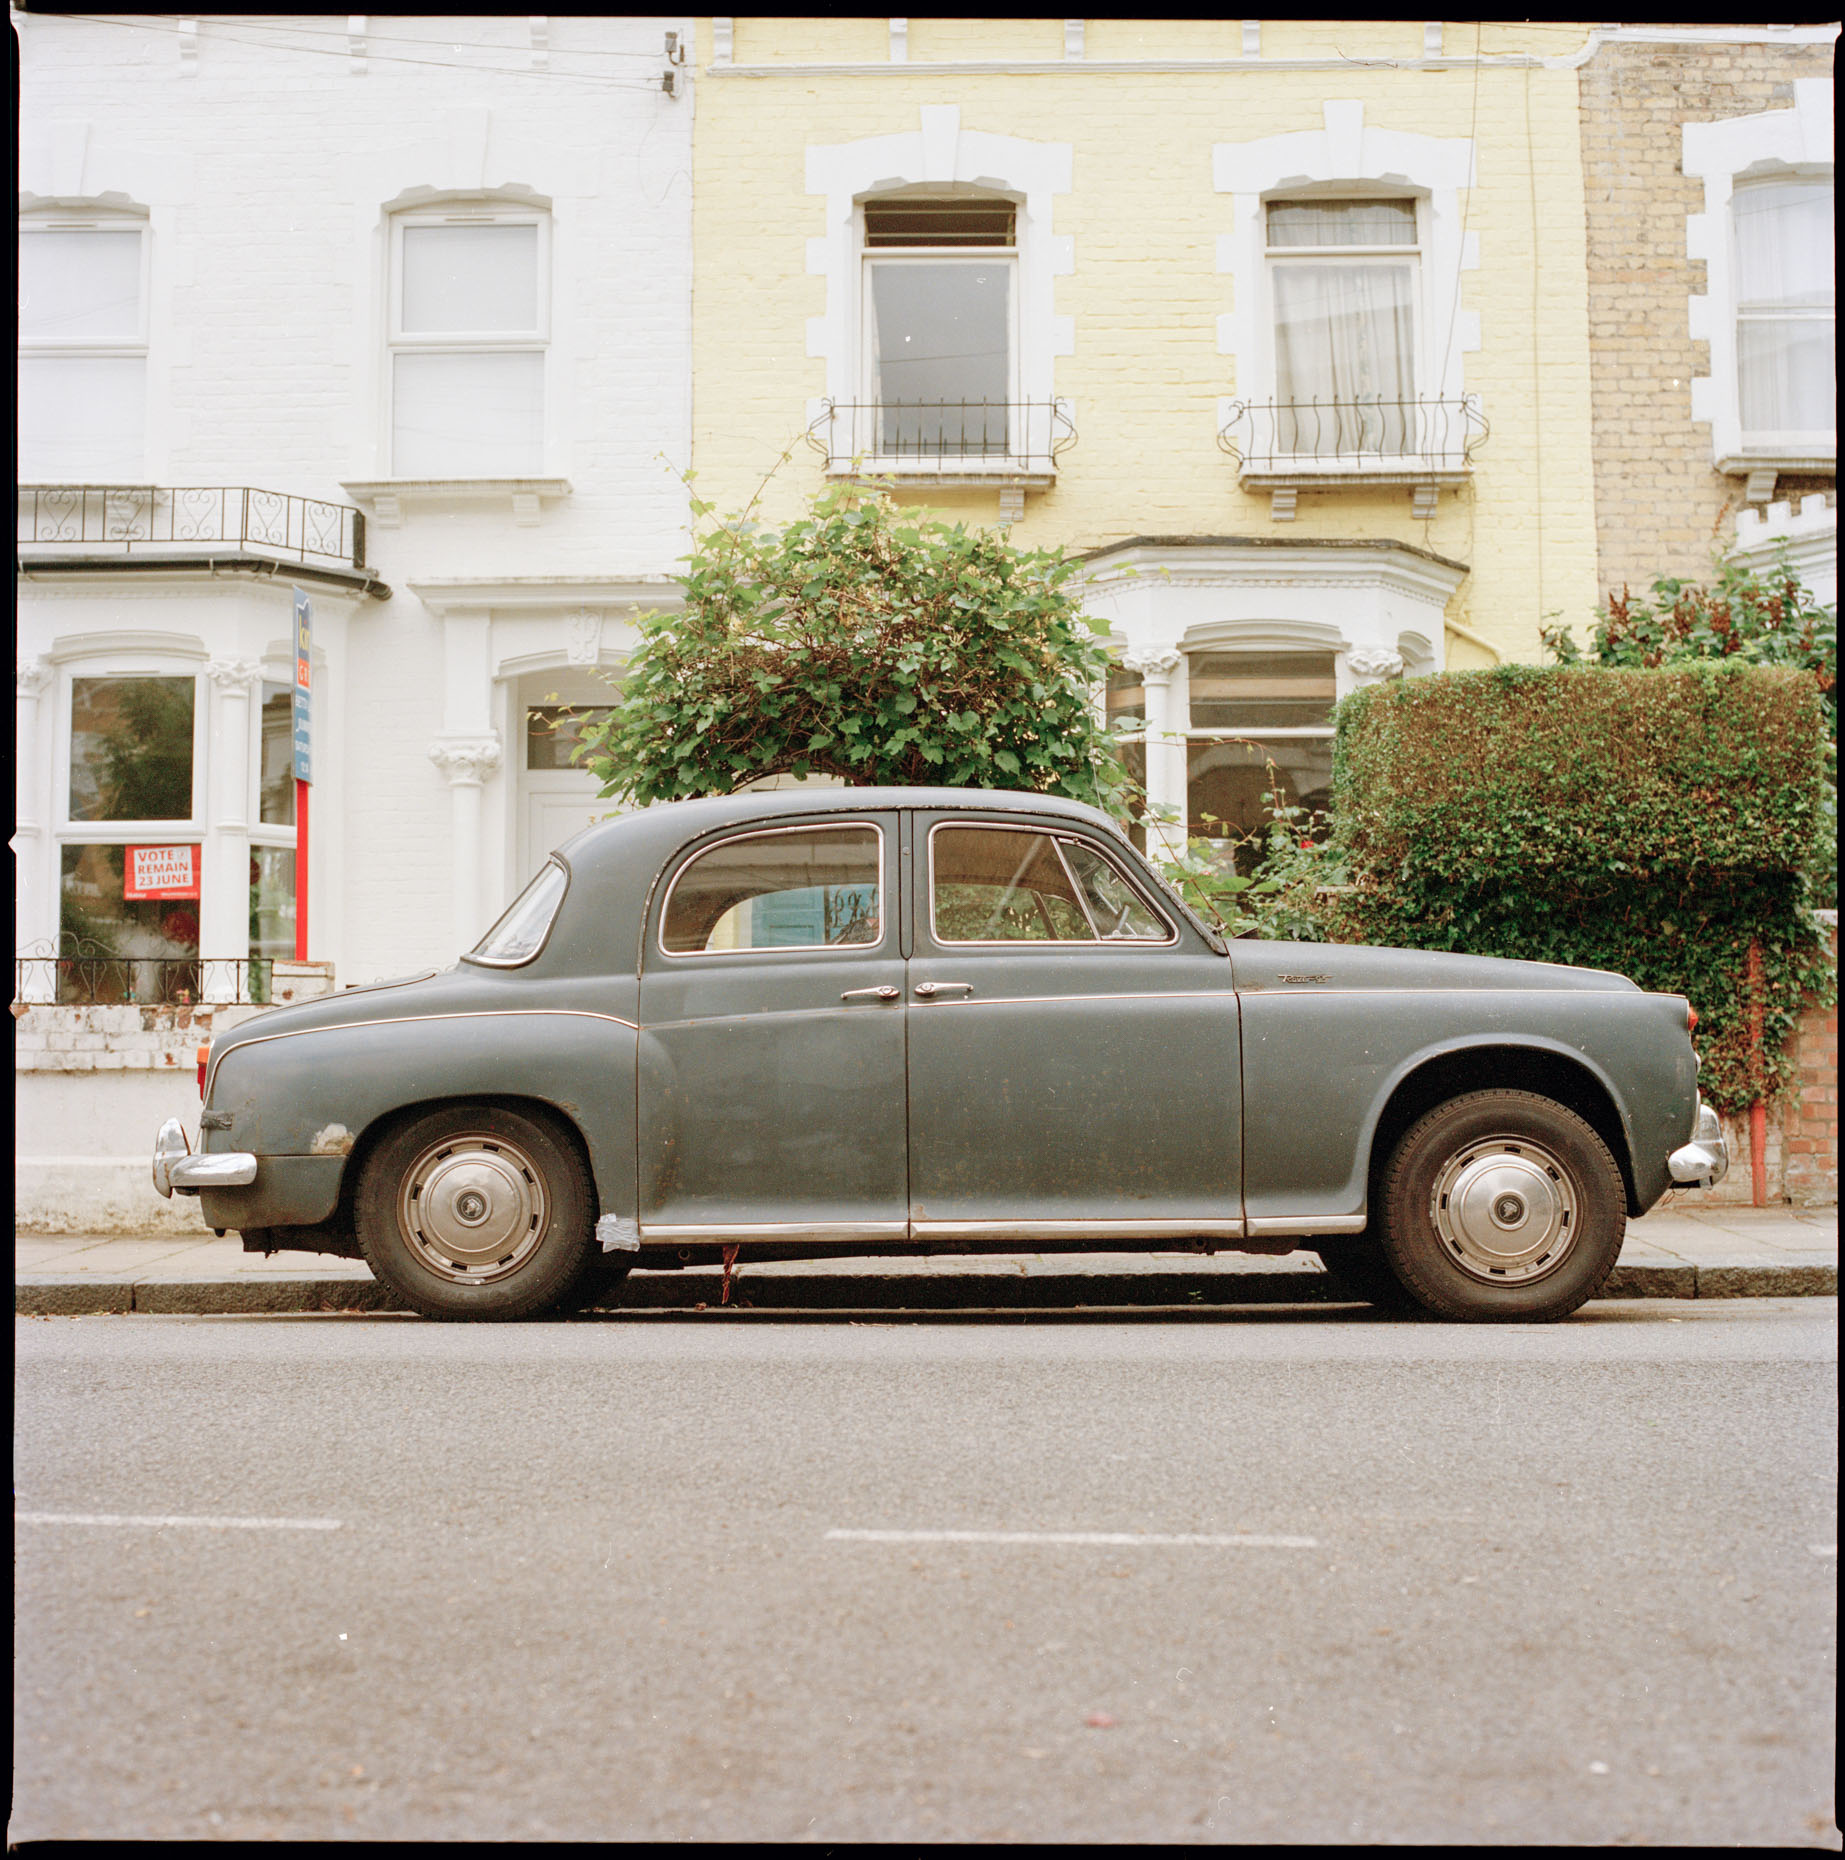 A vintage car sits on a Stoke Newington Street in London, UK.